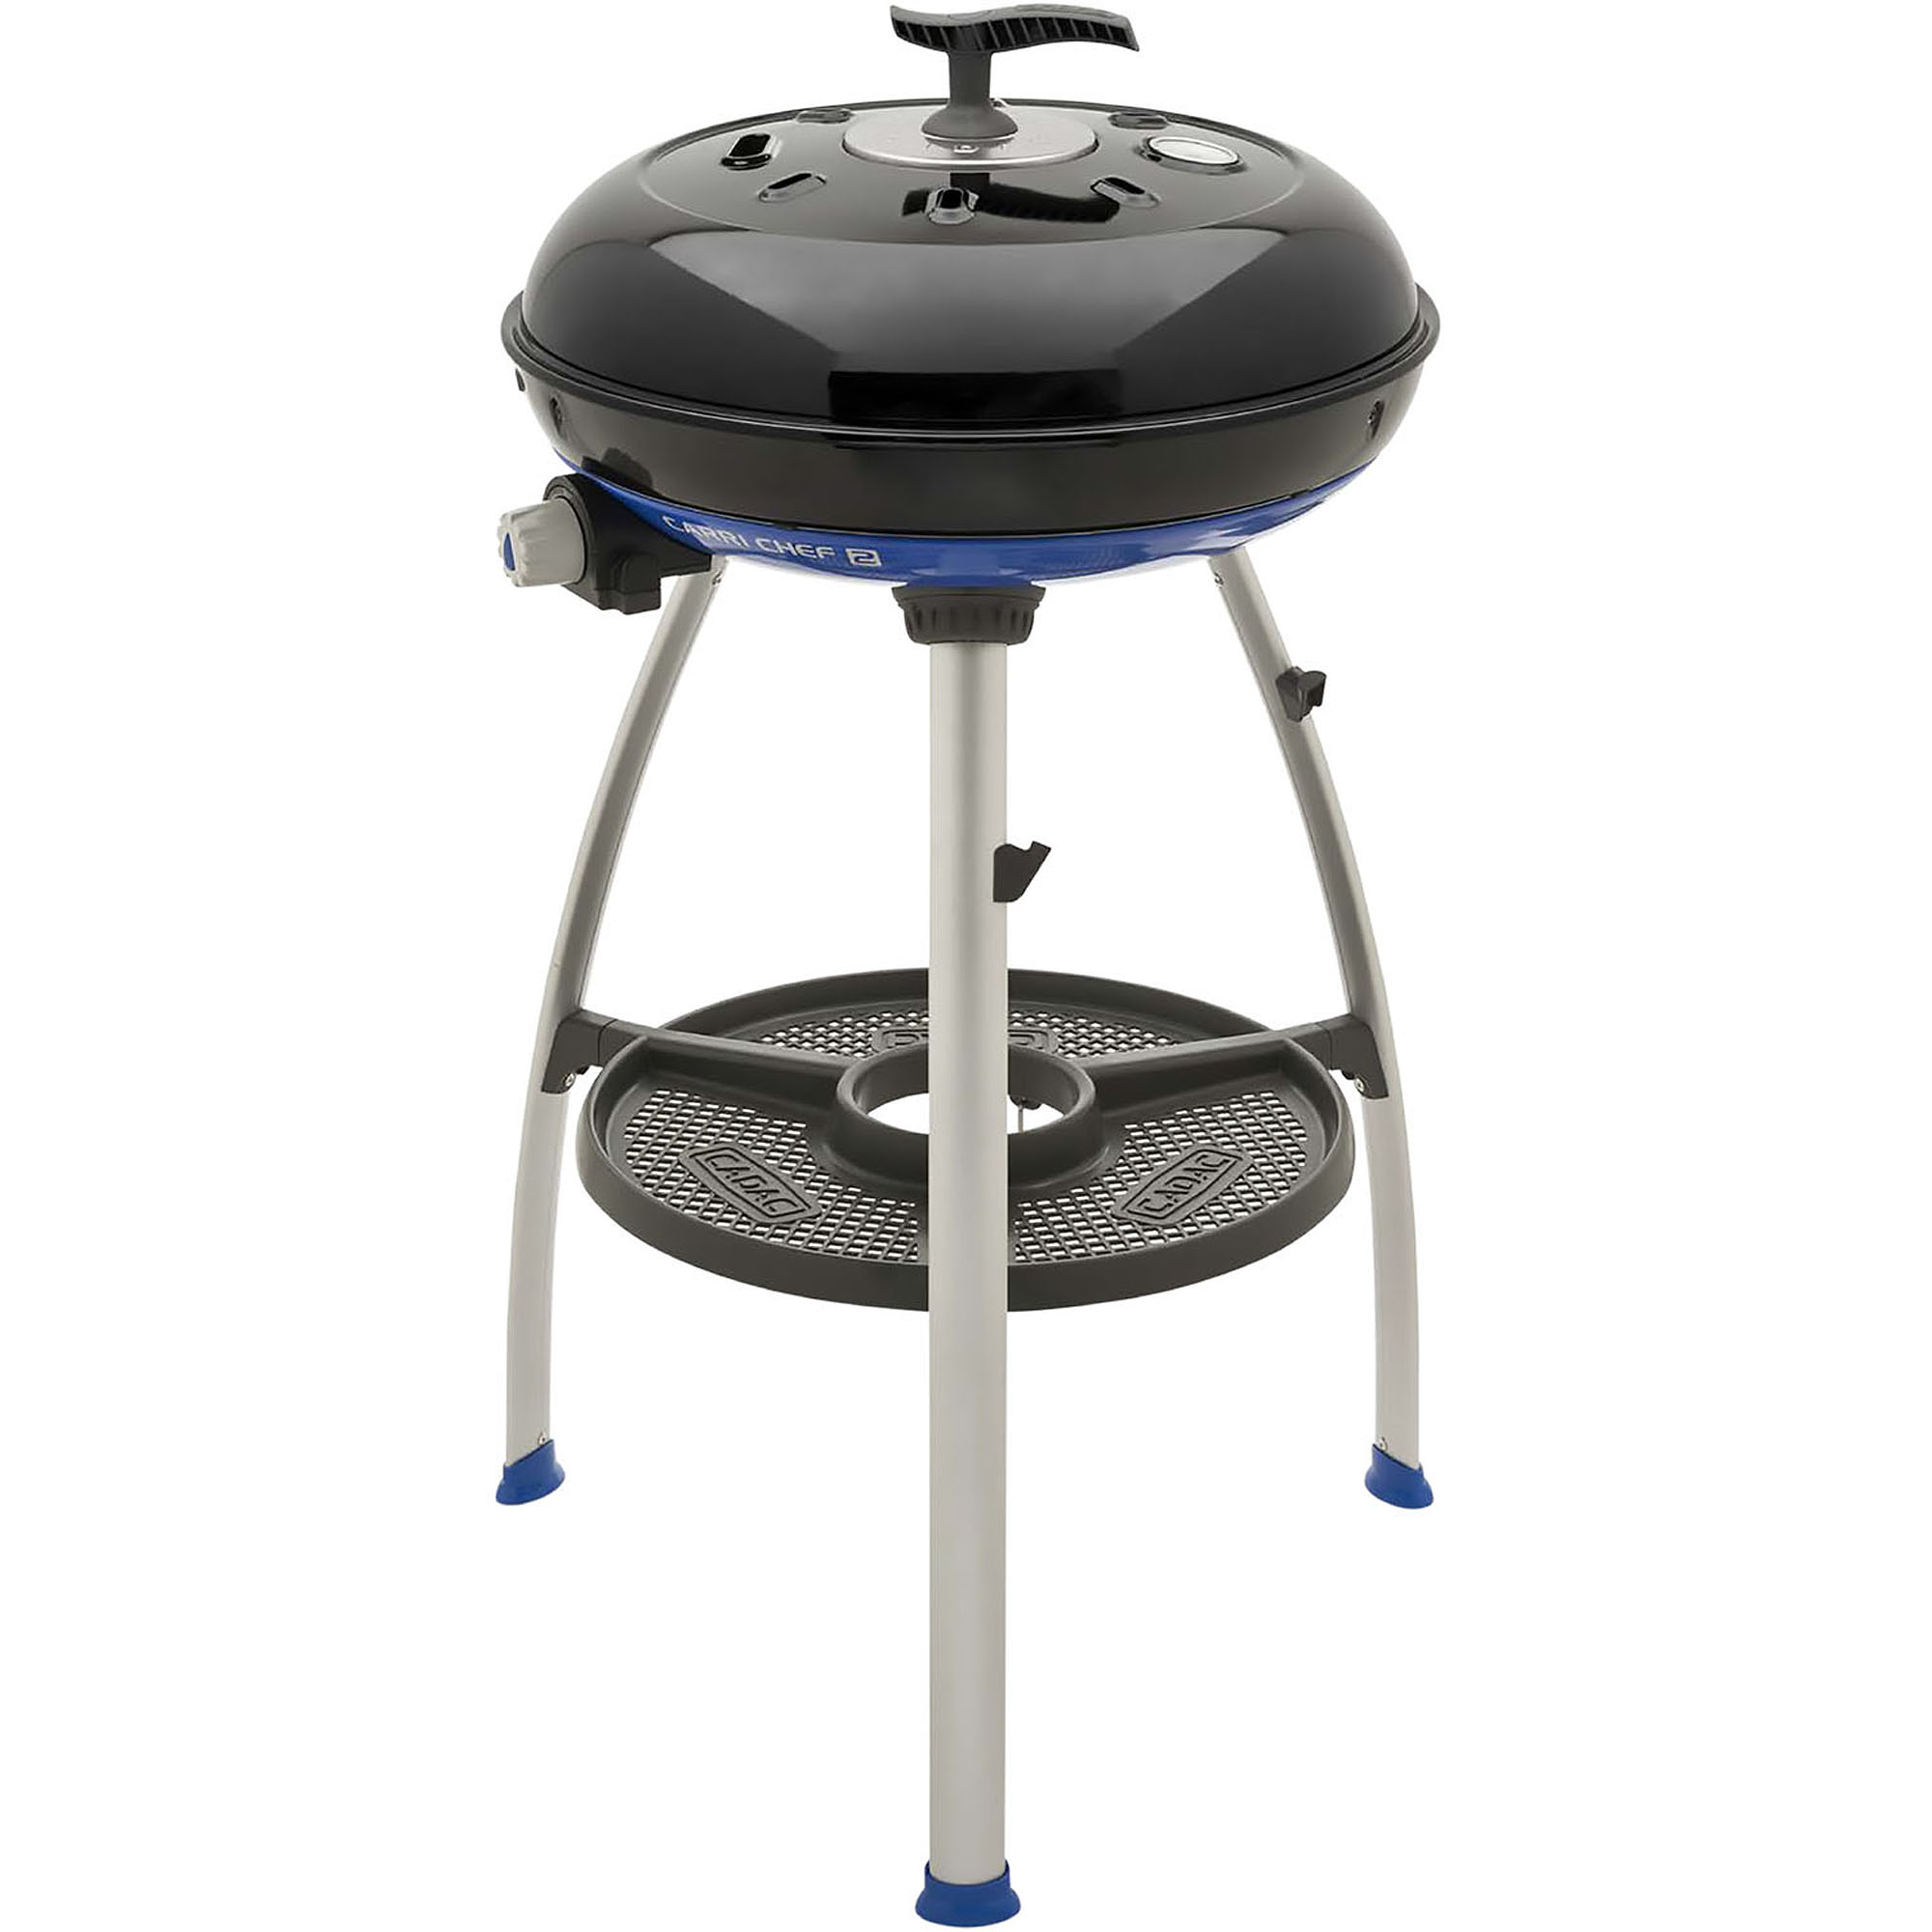 Cadac Carri Chef 2 Portable Grill with Pot Ring, Grill Plate, and Split Grill/Griddle Plate